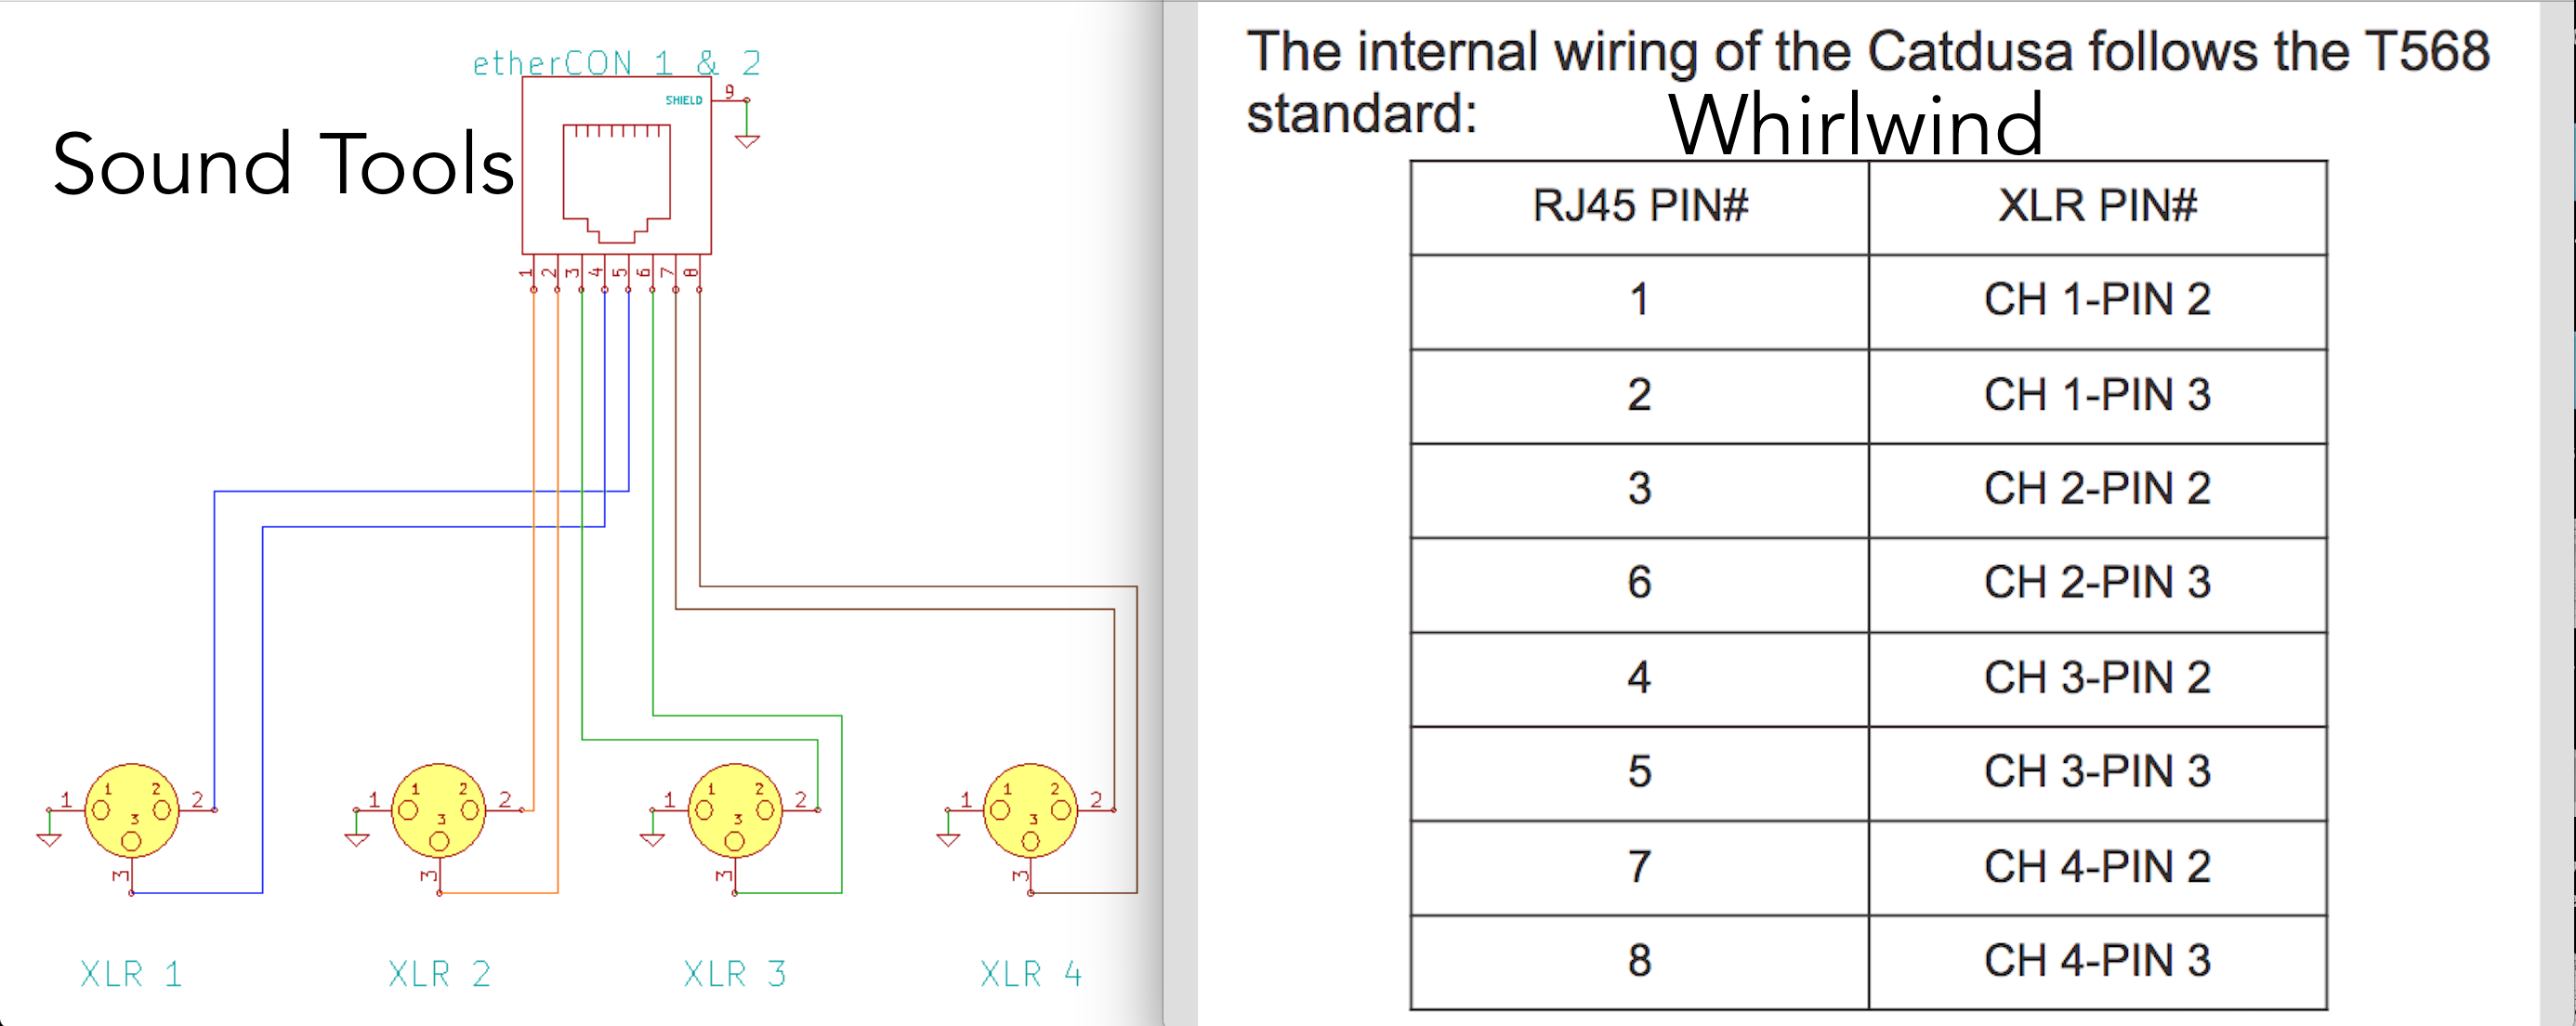 whirlwindusa.com – catdusa user guide PDF Note that the two platforms do  NOT use the same pin out which shouldn't matter as long as you don't mix  and match ...